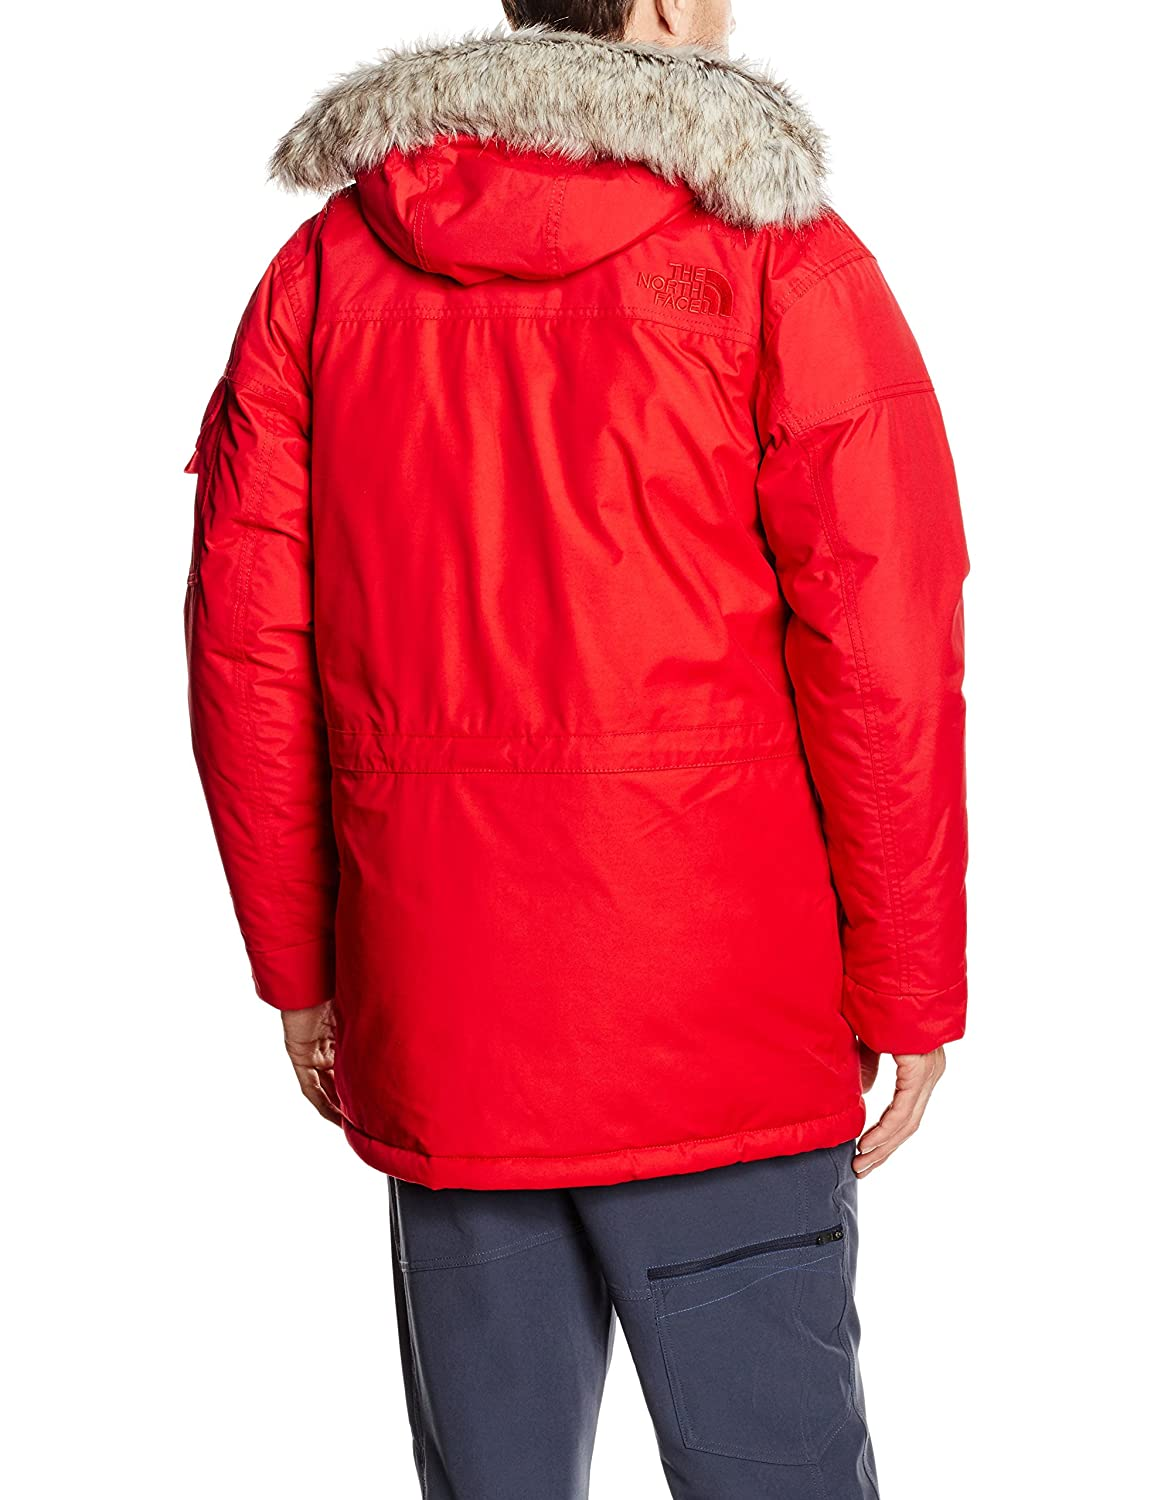 9fd9bb595d The North Face Waterproof Mcmurdo Men's Outdoor Hooded Jacket:  Amazon.co.uk: Sports & Outdoors